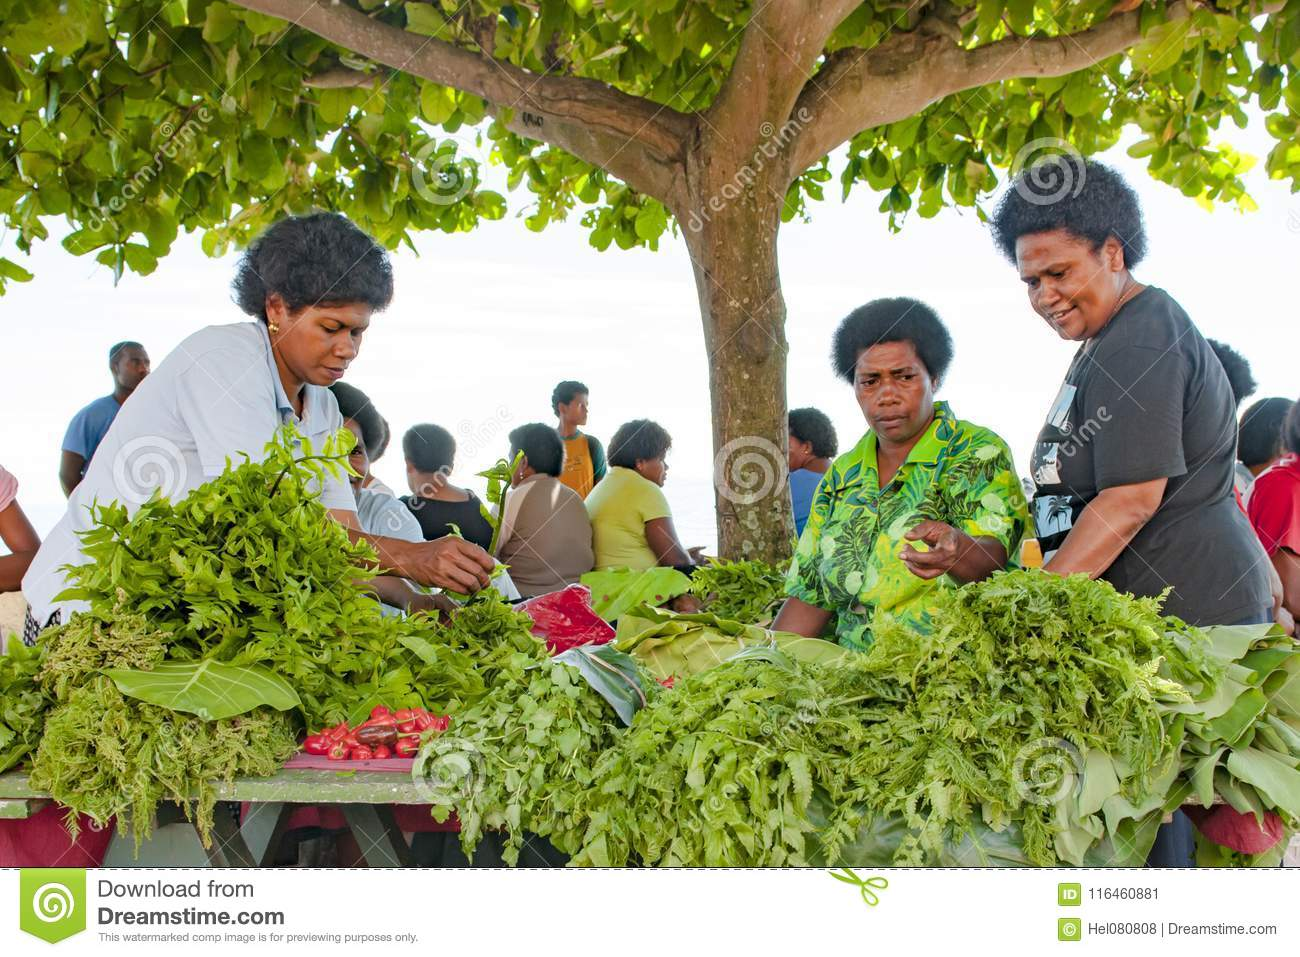 Fresh green salad and vegetables in shade of leaves of a tree on tropical market on Island in Pacific Ocean